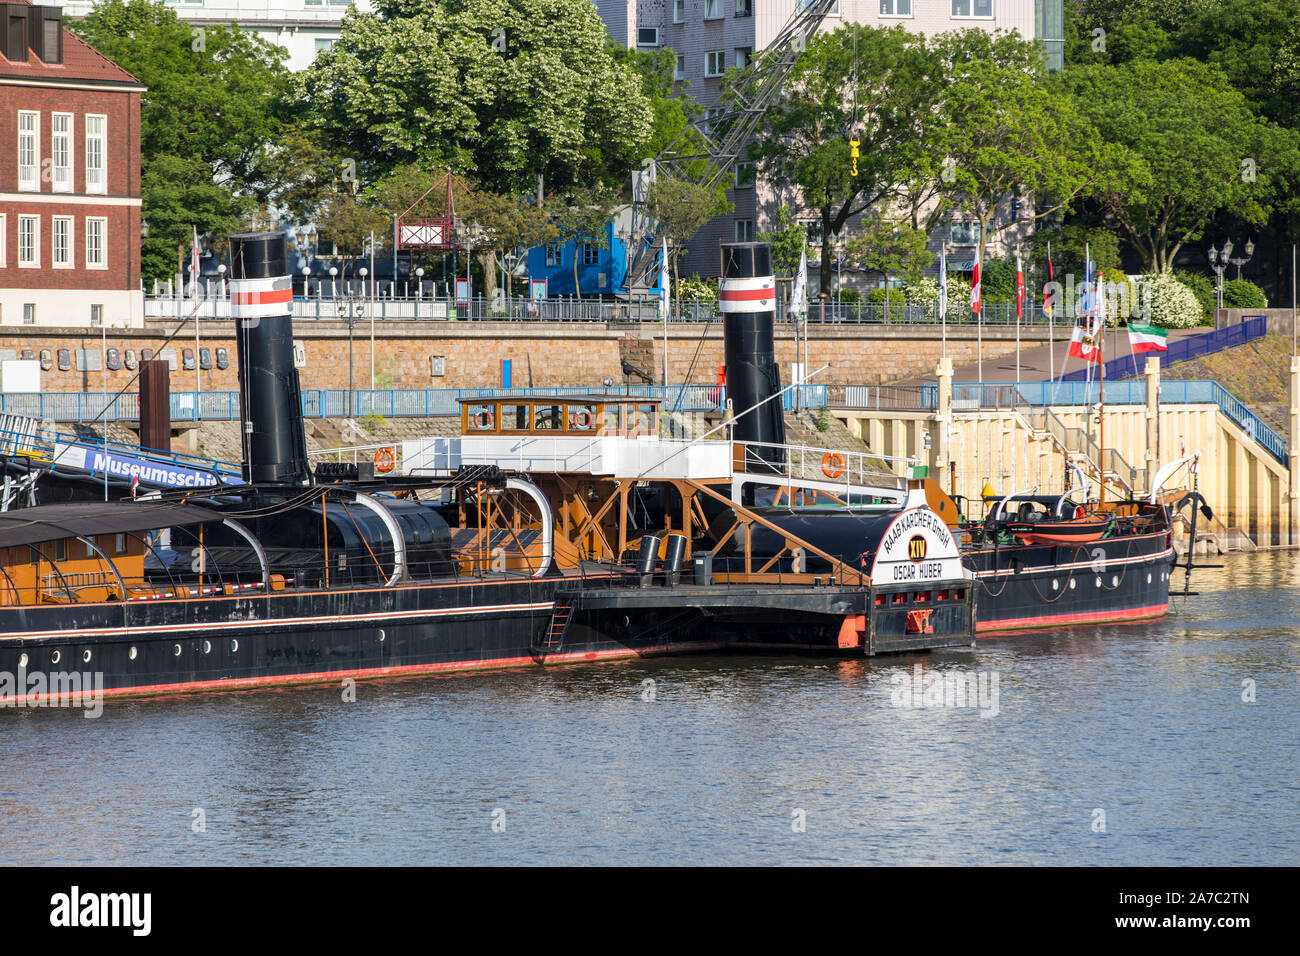 Duisburg-Ruhrort, museum ship Oscar-Huber, Museum of German Inland Navigation, in the port of Ruhrort, Stock Photo